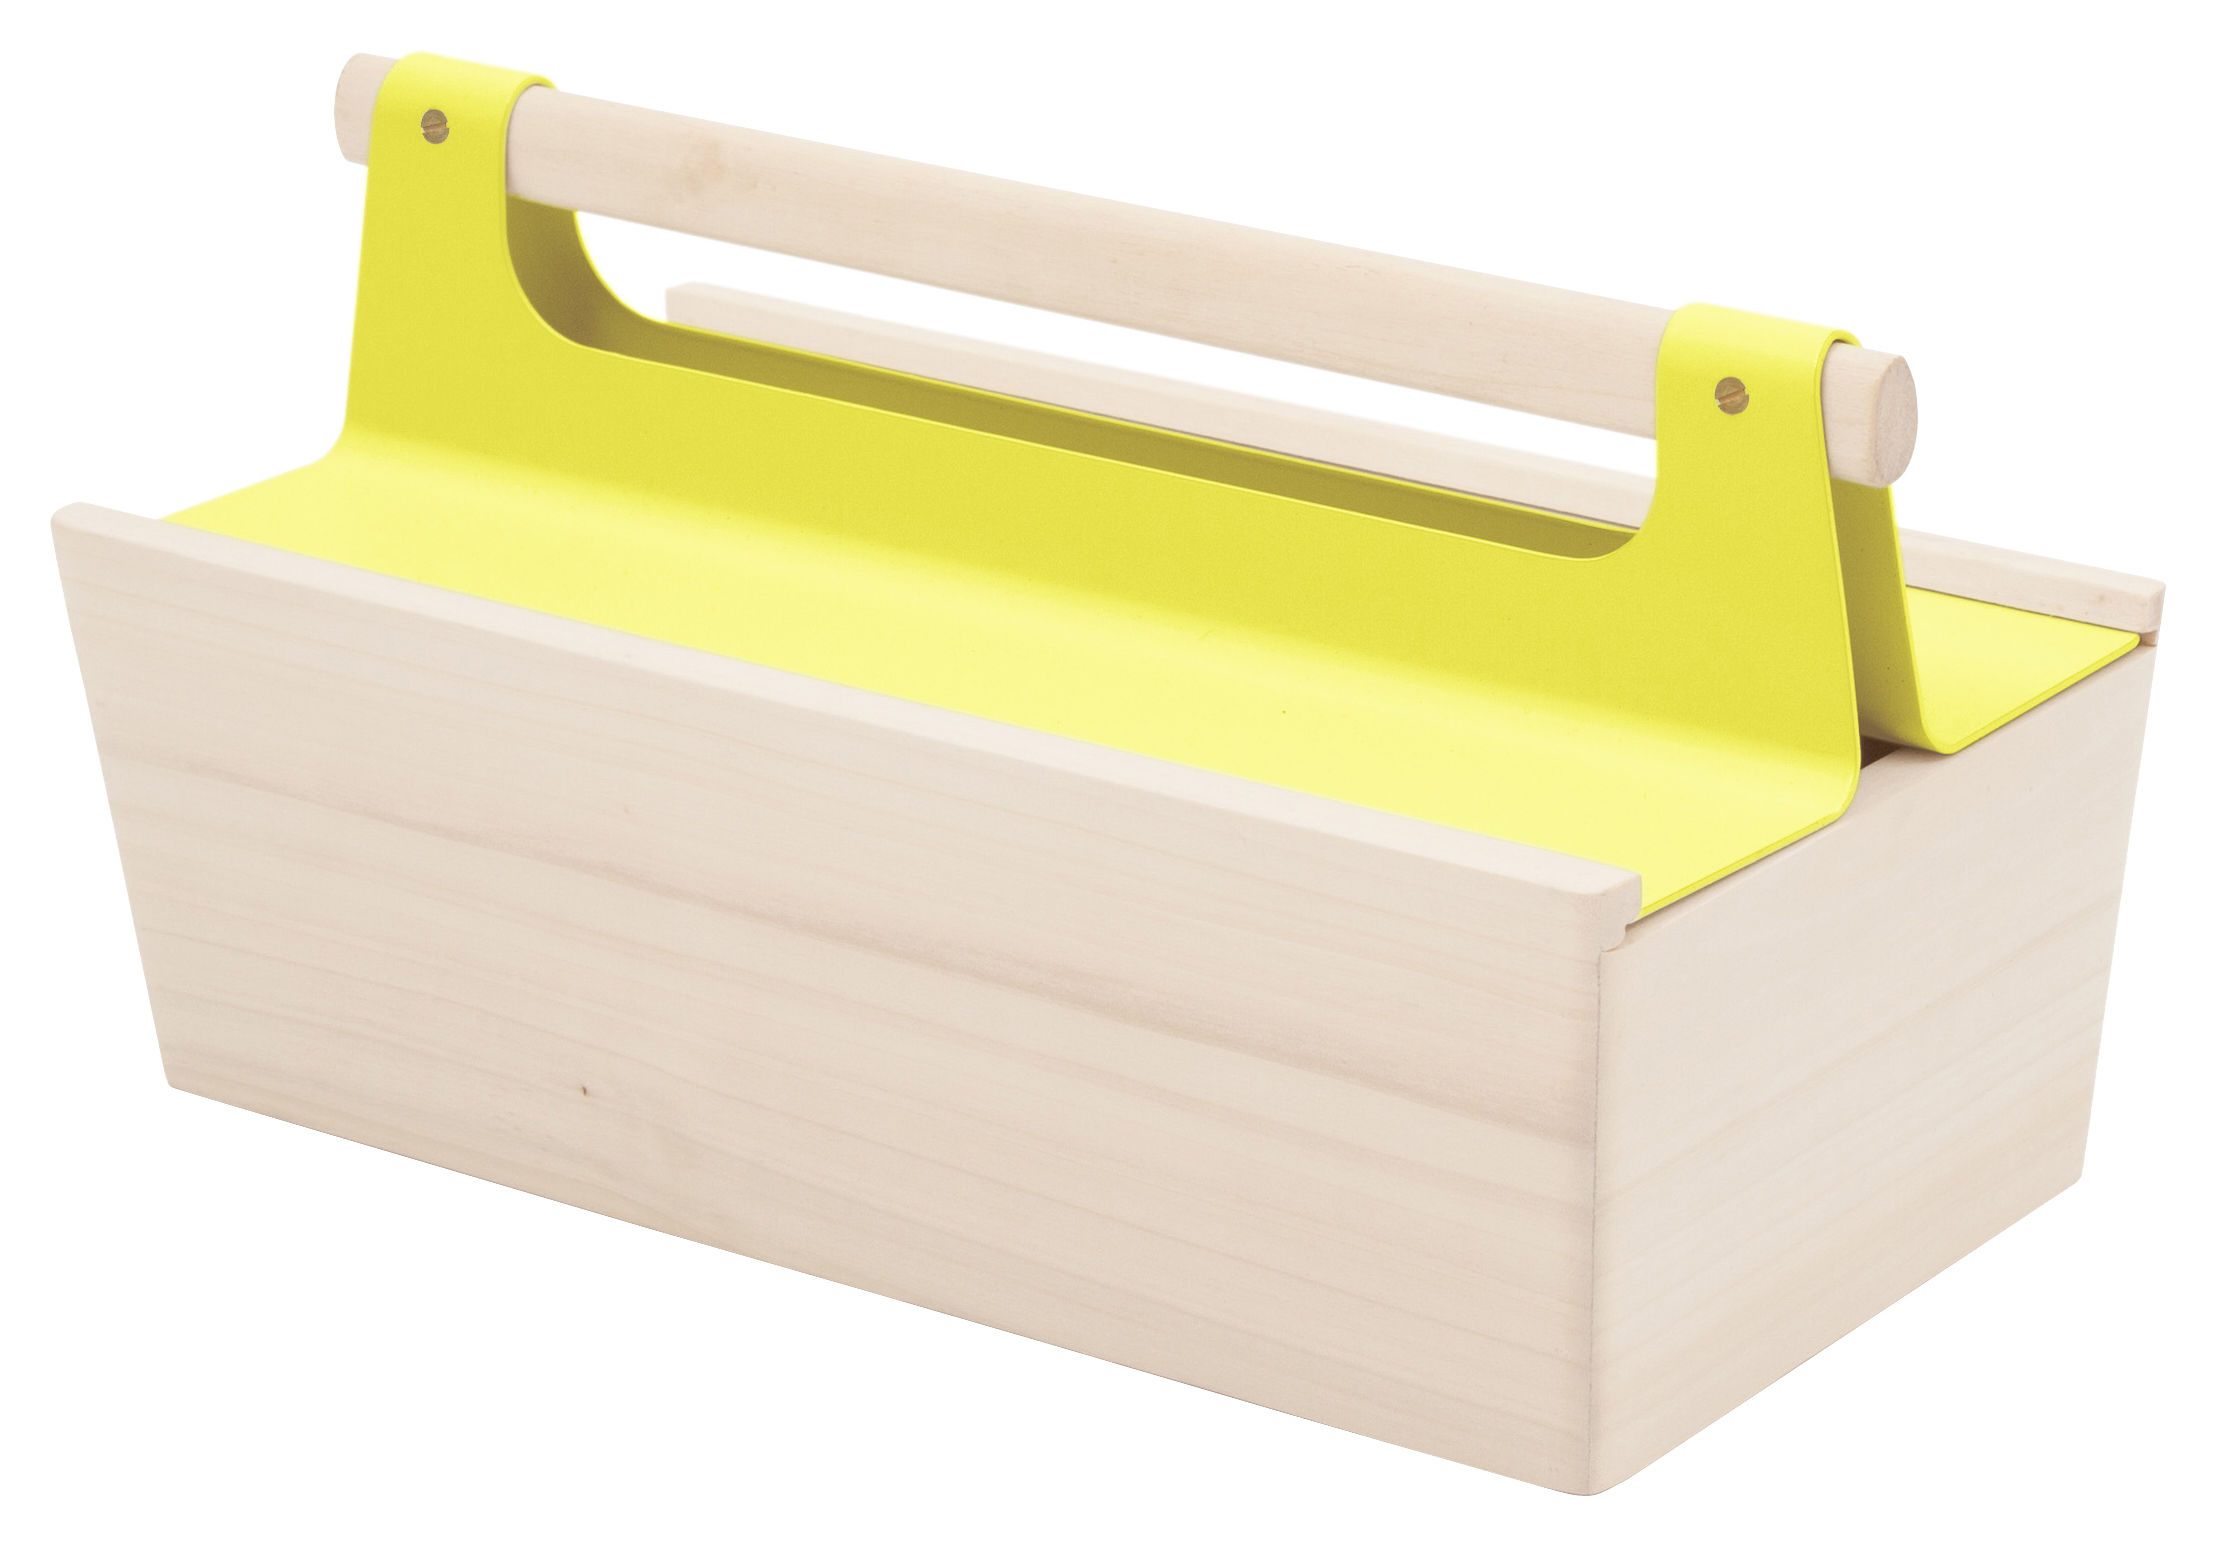 Decoration - Children's Home Accessories - Louisette Box by Hartô - Lemon yellow - Lacquered metal, Limetree